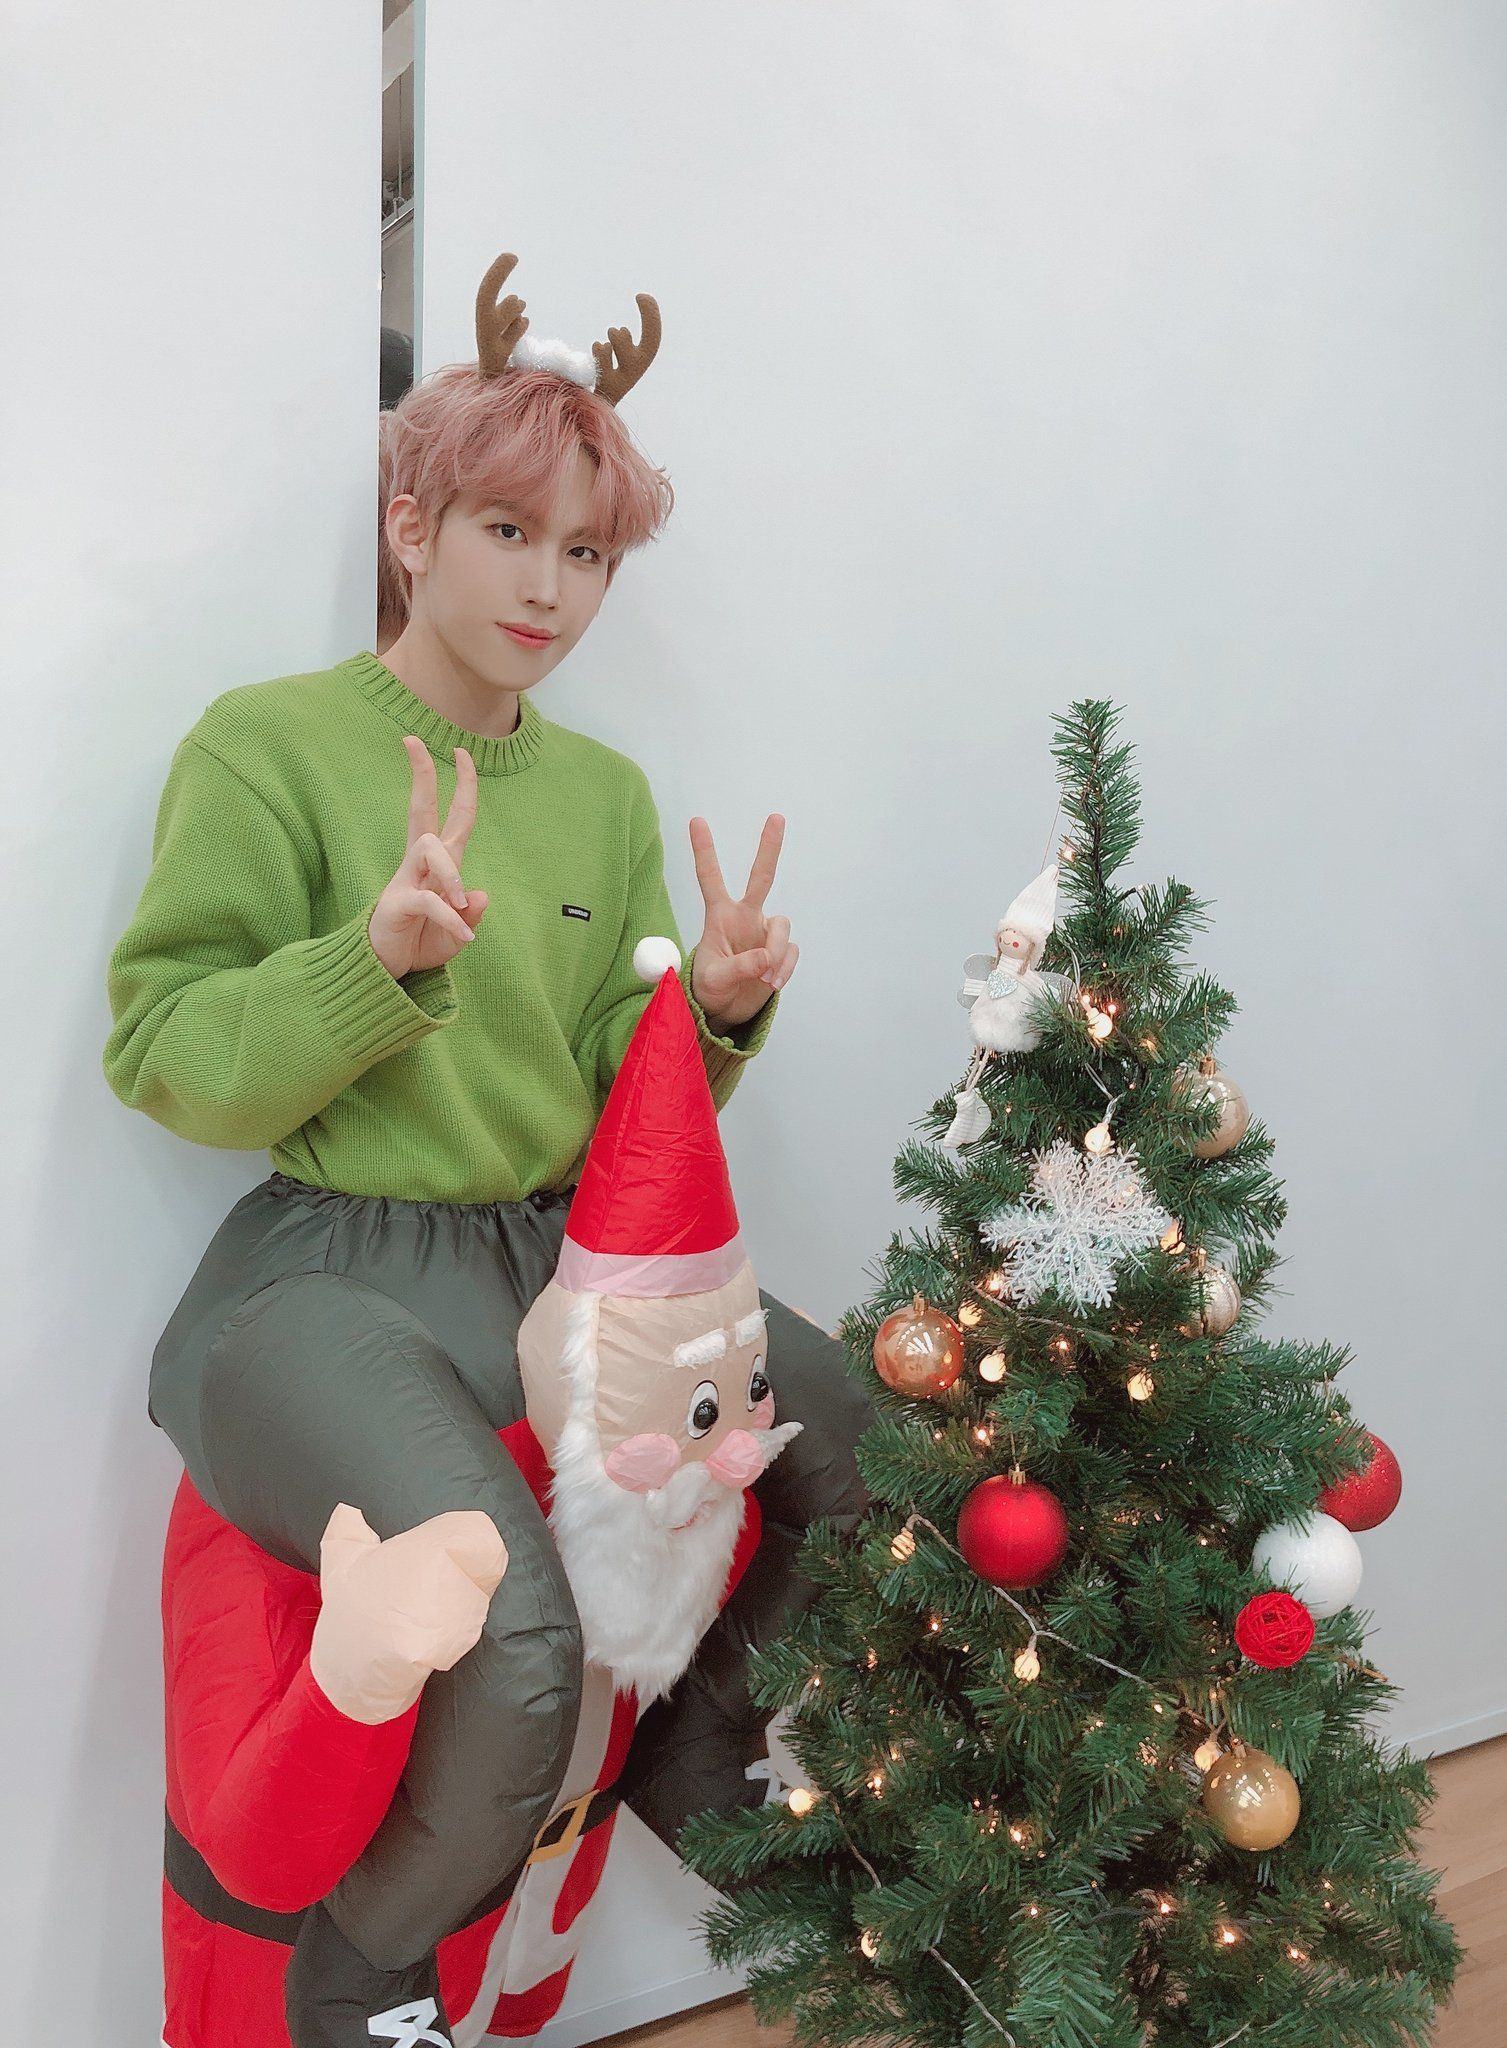 Bae173 Member On Twitter 영서 같이 사진 찍기 힘든 산타할아버지 Bae173 비에이이173 Youngseo In 2020 Christmas Ornaments Novelty Christmas Holiday Decor